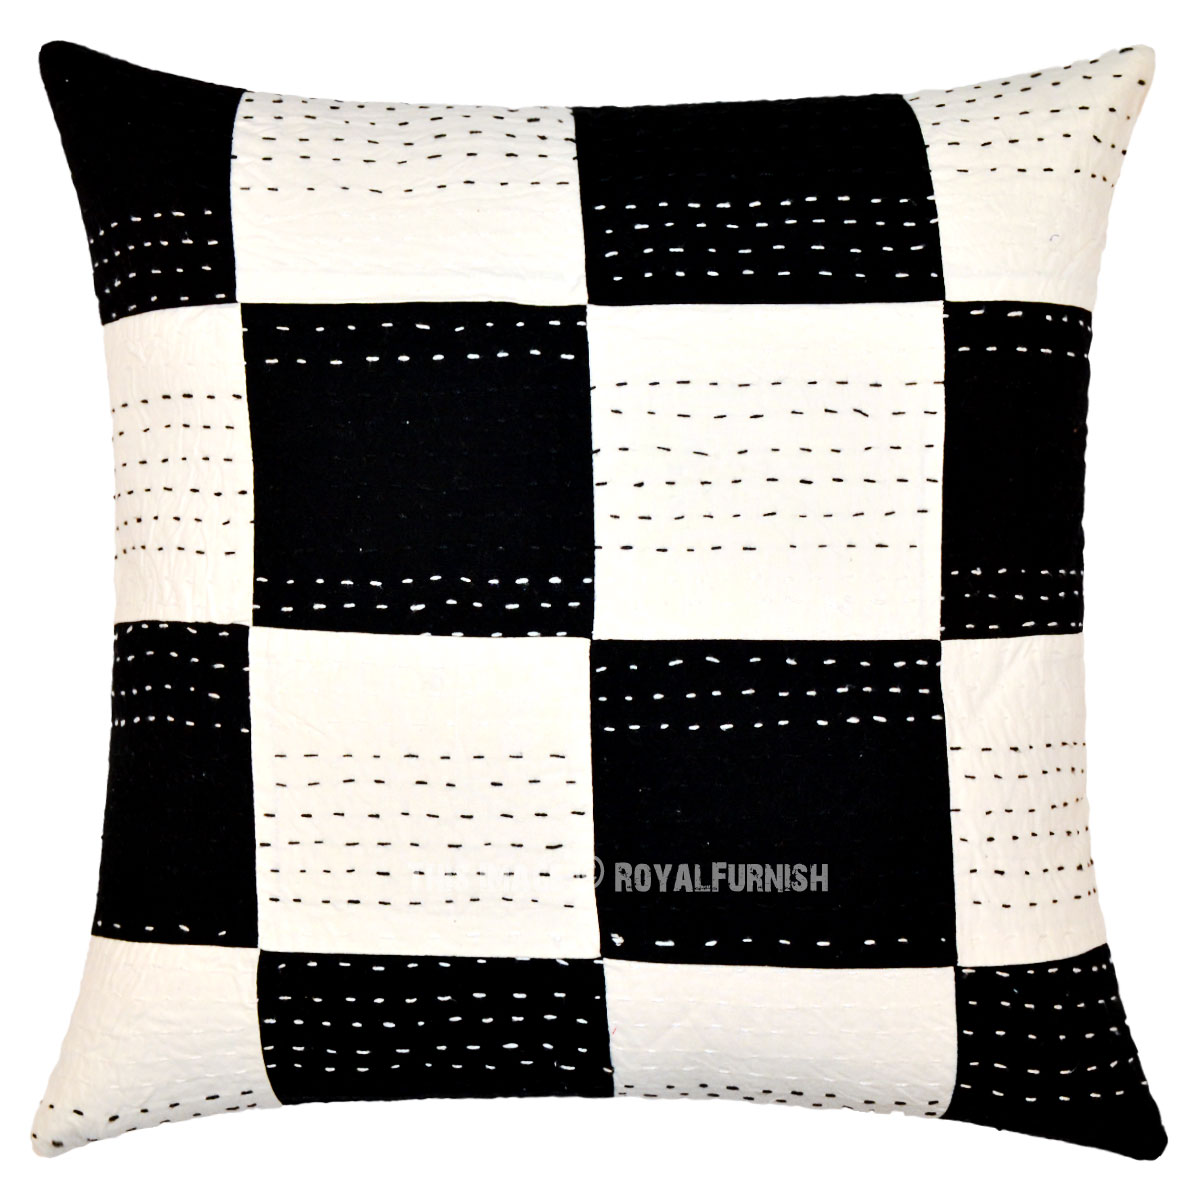 Throw Me A Pillow Coupon Code : Decorative Black & White Squares Kantha Throw Pillow Case 40